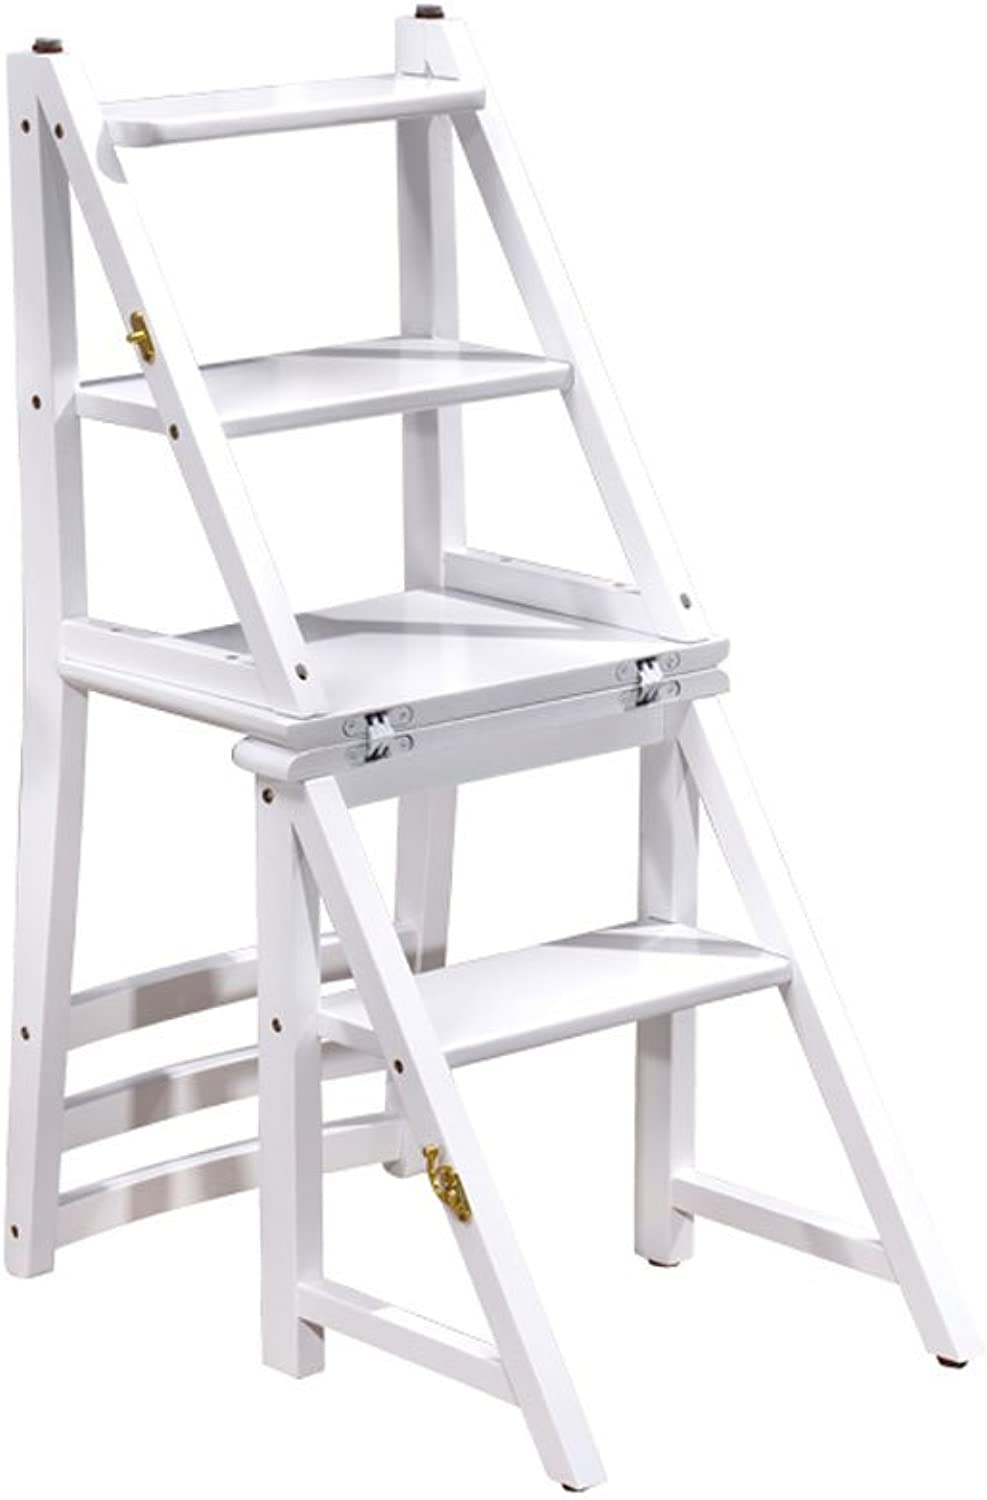 YQRYP Non-Slip Step Stool Double Step Stool Bamboo Folding Ladder Stair Chair Household Multifunction Indoor Household Ascend Small Ladder Stool Slip Resistant,Durable,Household,Outdoor